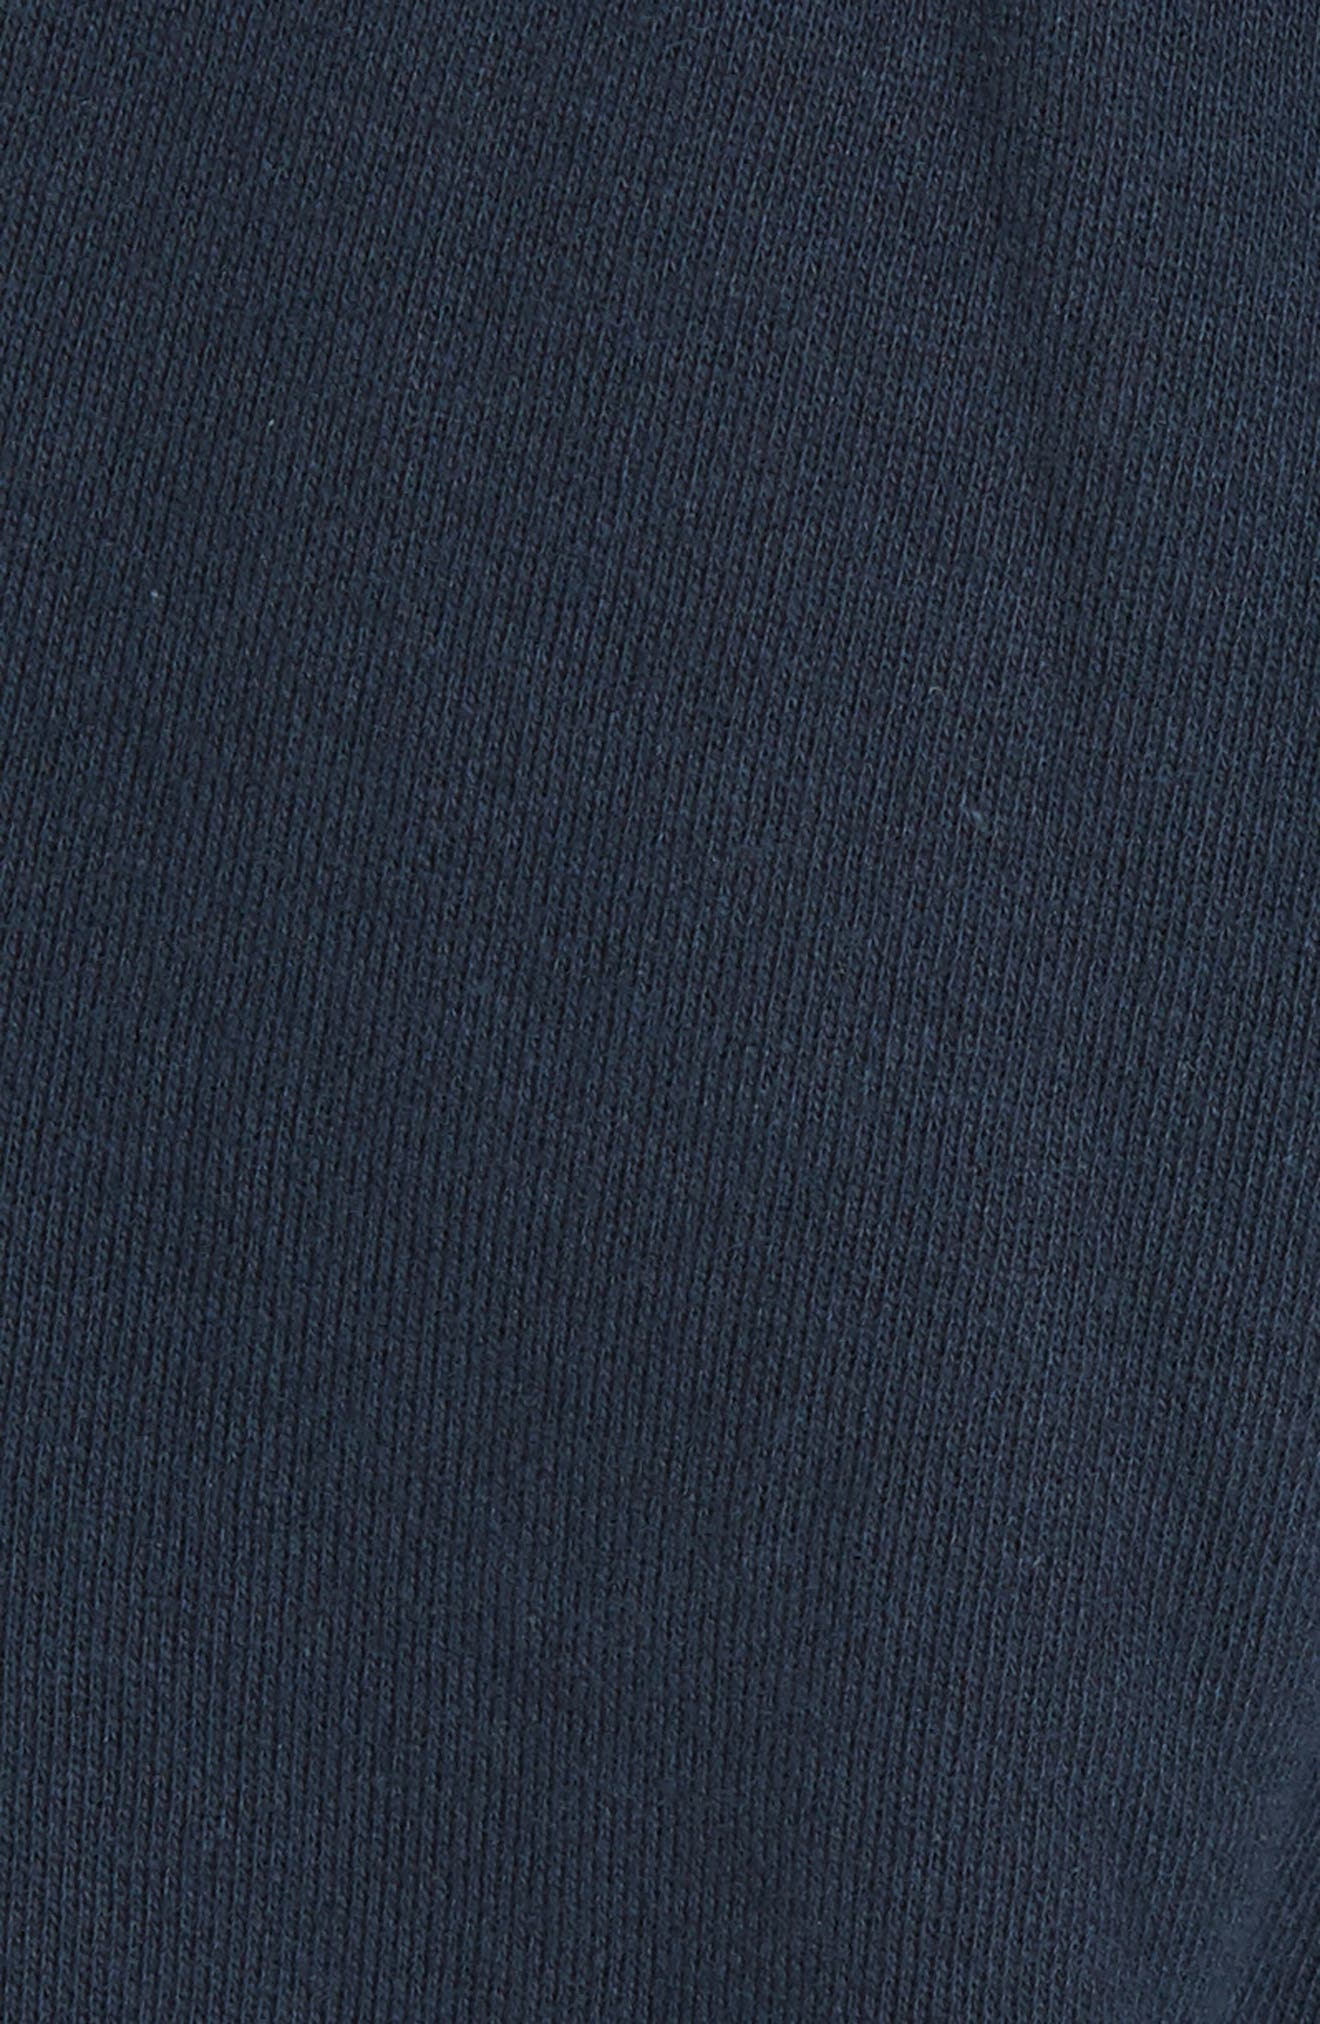 Logo Sweatpants,                             Alternate thumbnail 5, color,                             B DARK NAVY